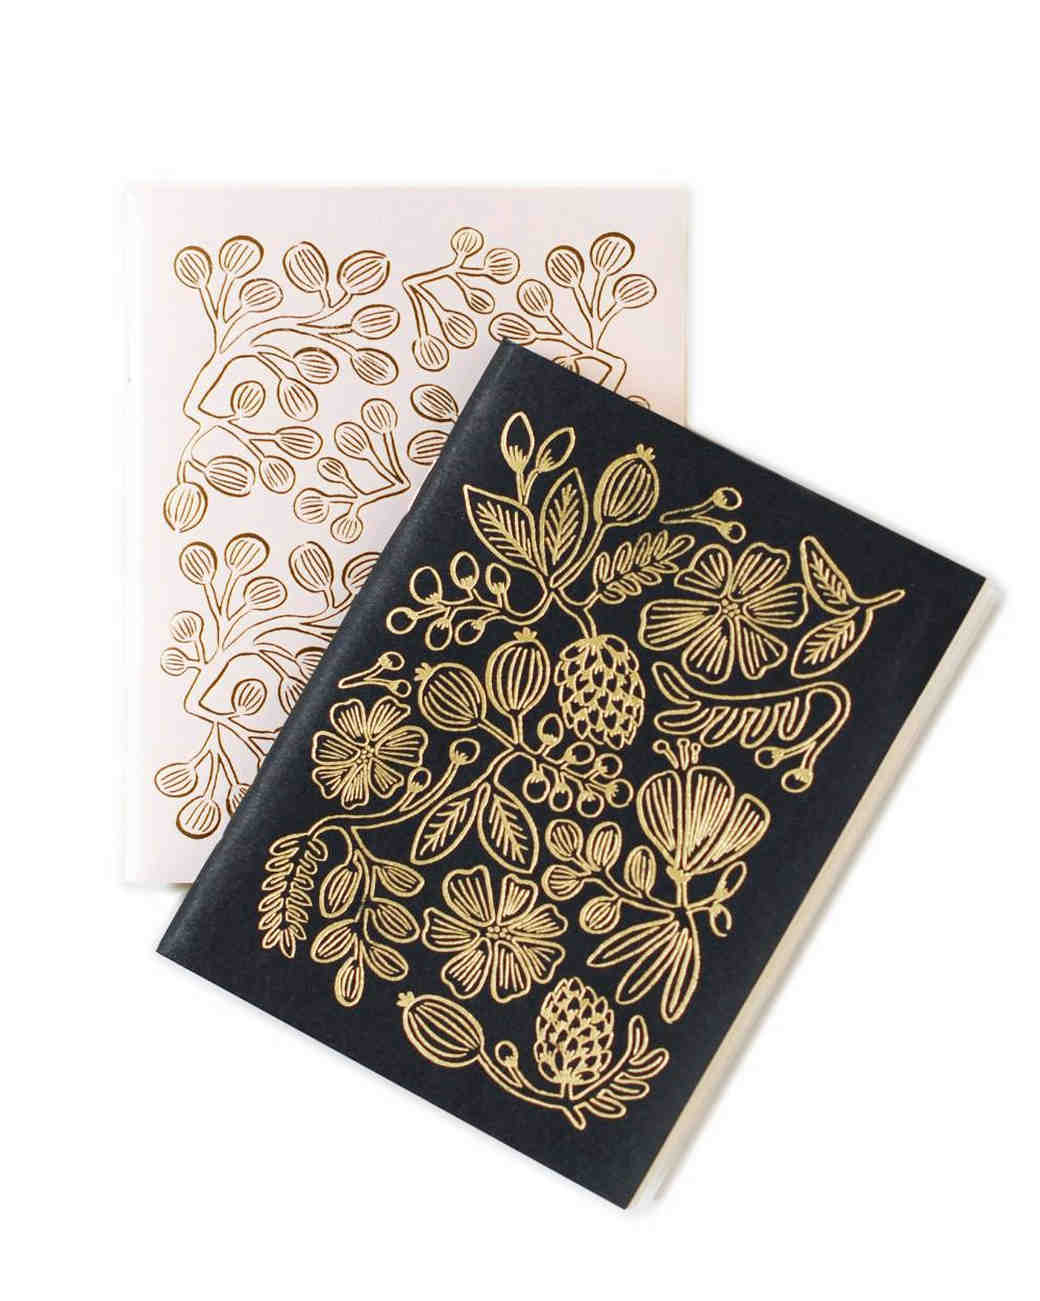 wedding-vow-journal-rifle-paper-co-gold-foil-0716.jpg